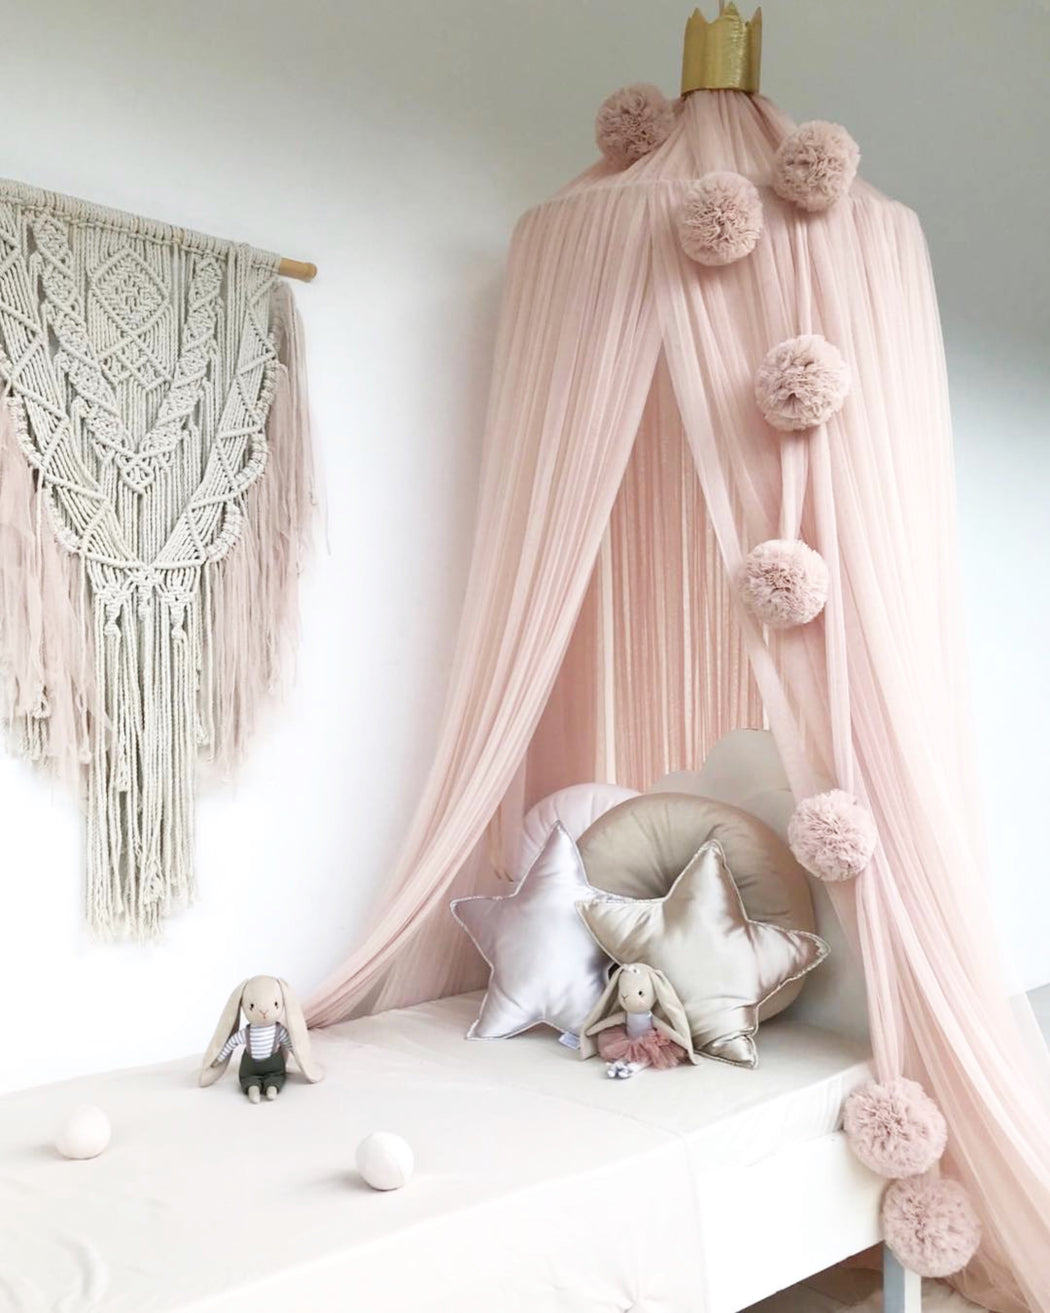 Champagne Dreamy Canopy, Decor, Spinkie - 3LittlePicks